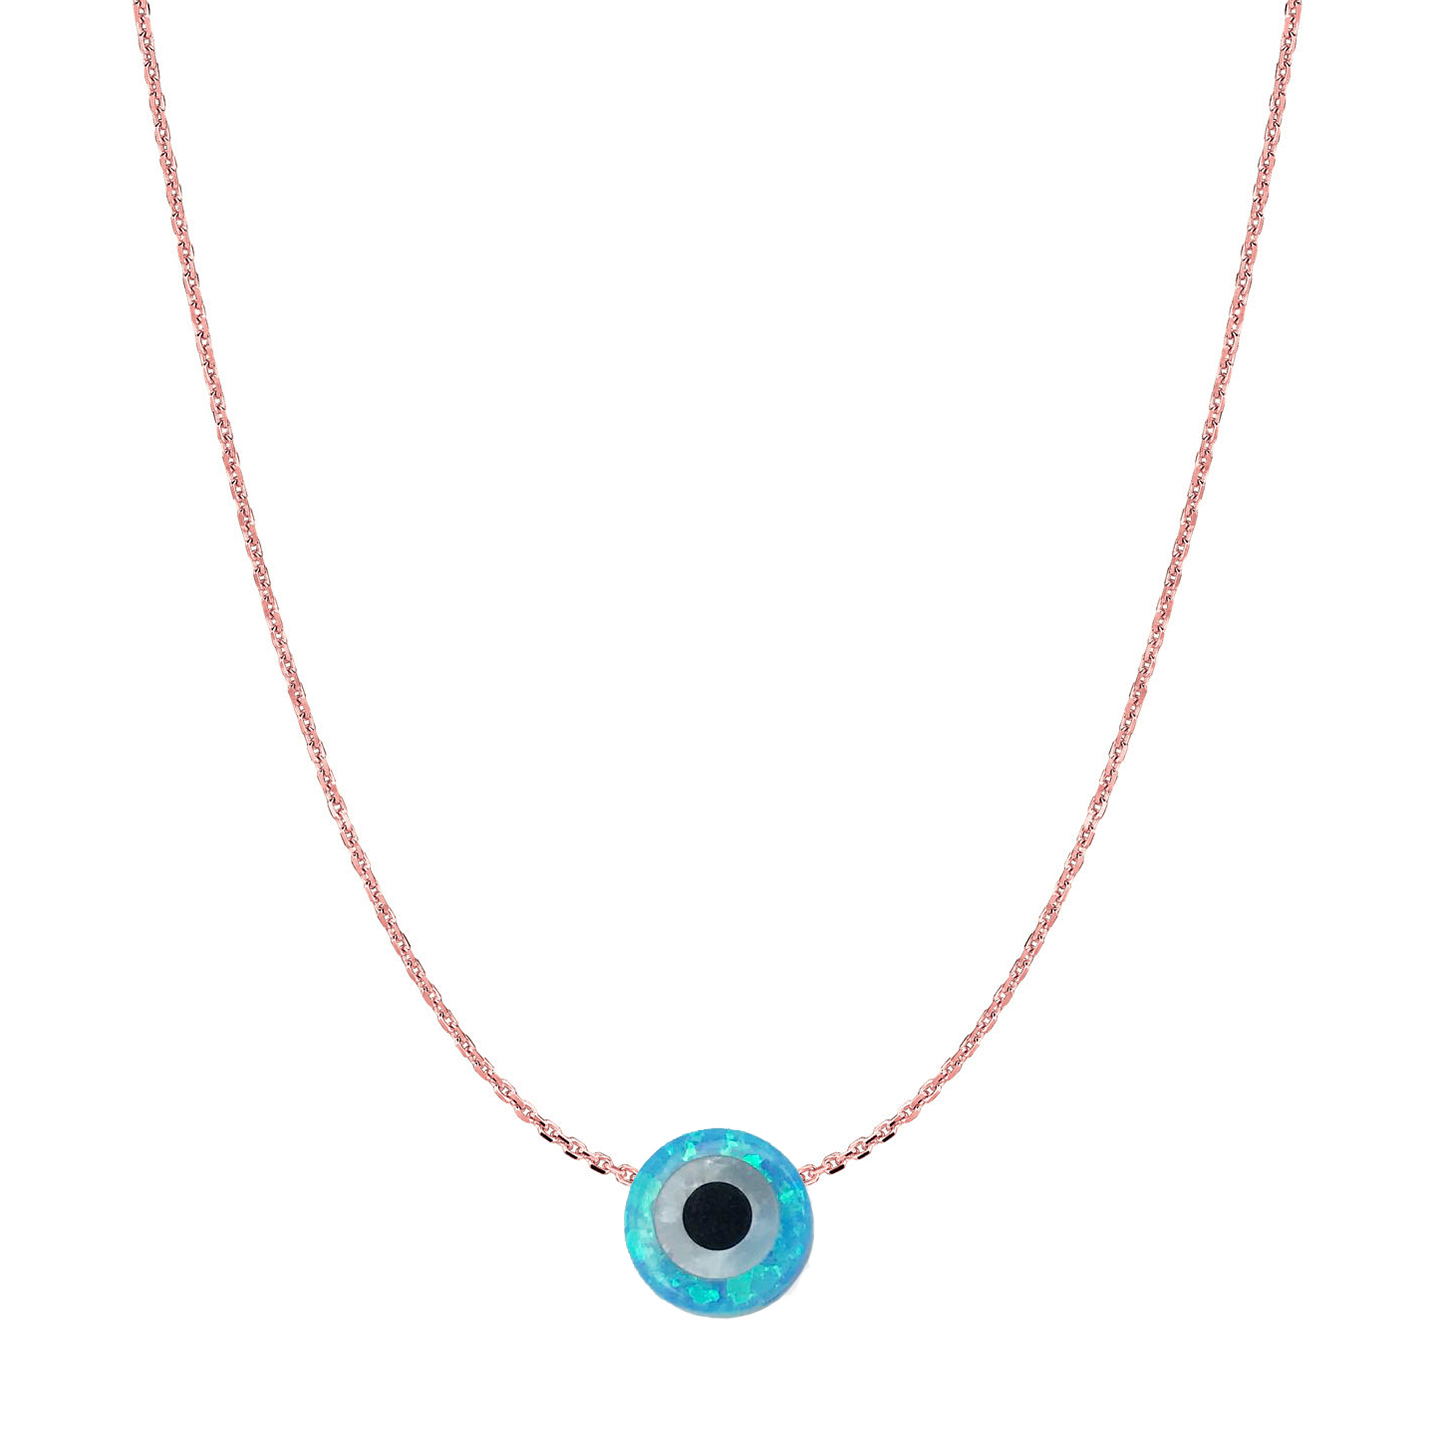 14 Karat Gold Light Blue Opal Evil Eye Necklace